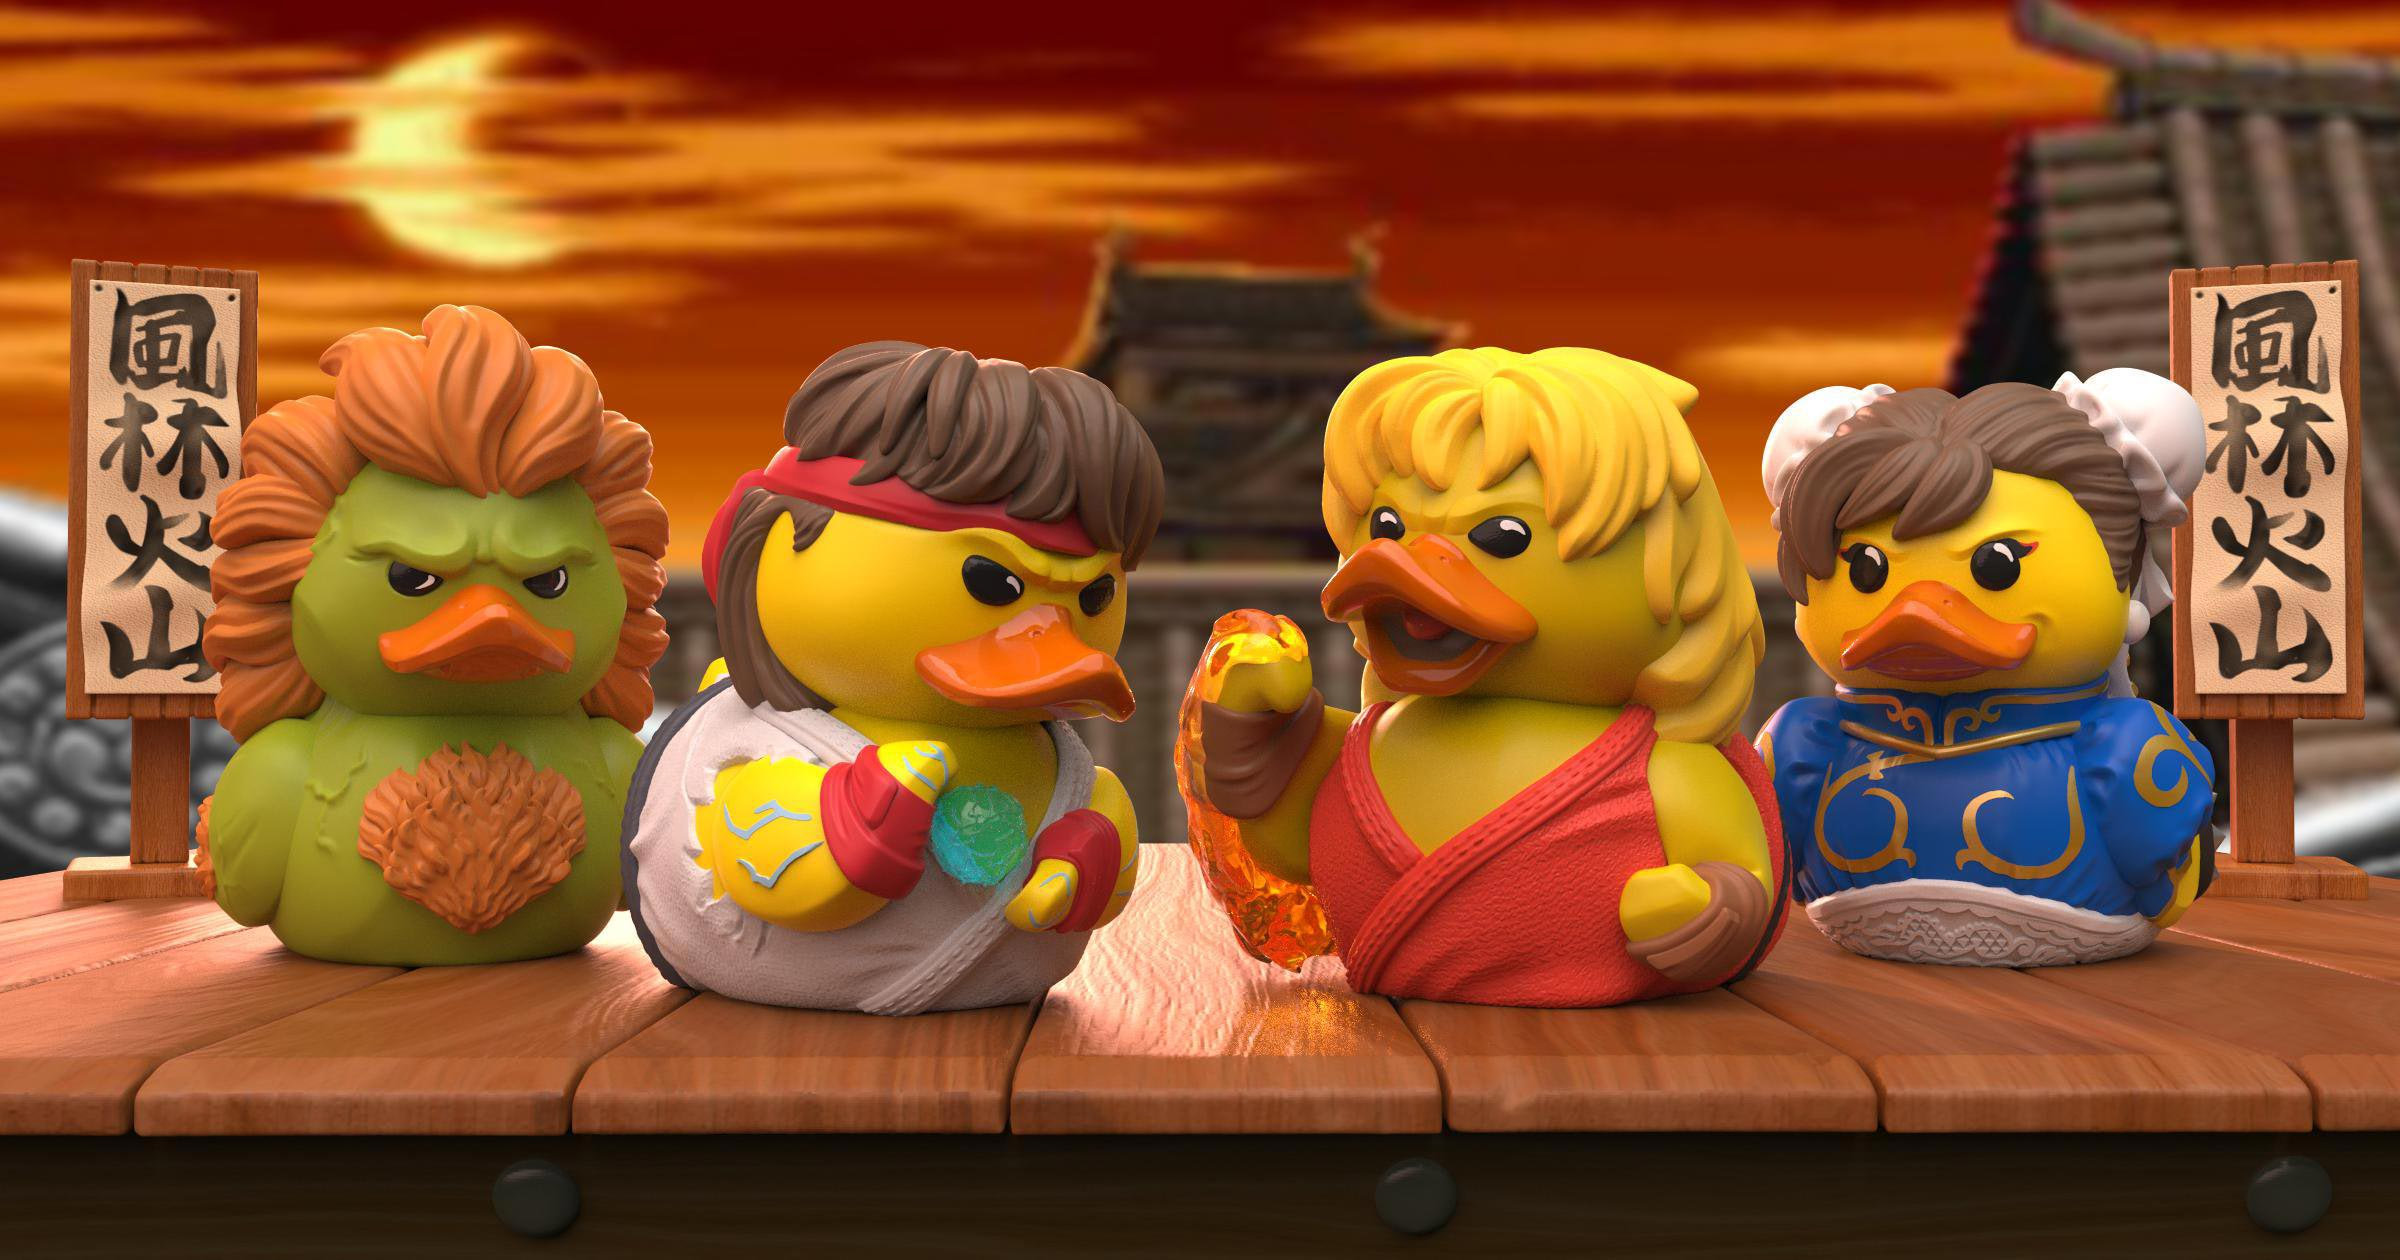 Street Fighter Ducks 1 out of 5 image gallery